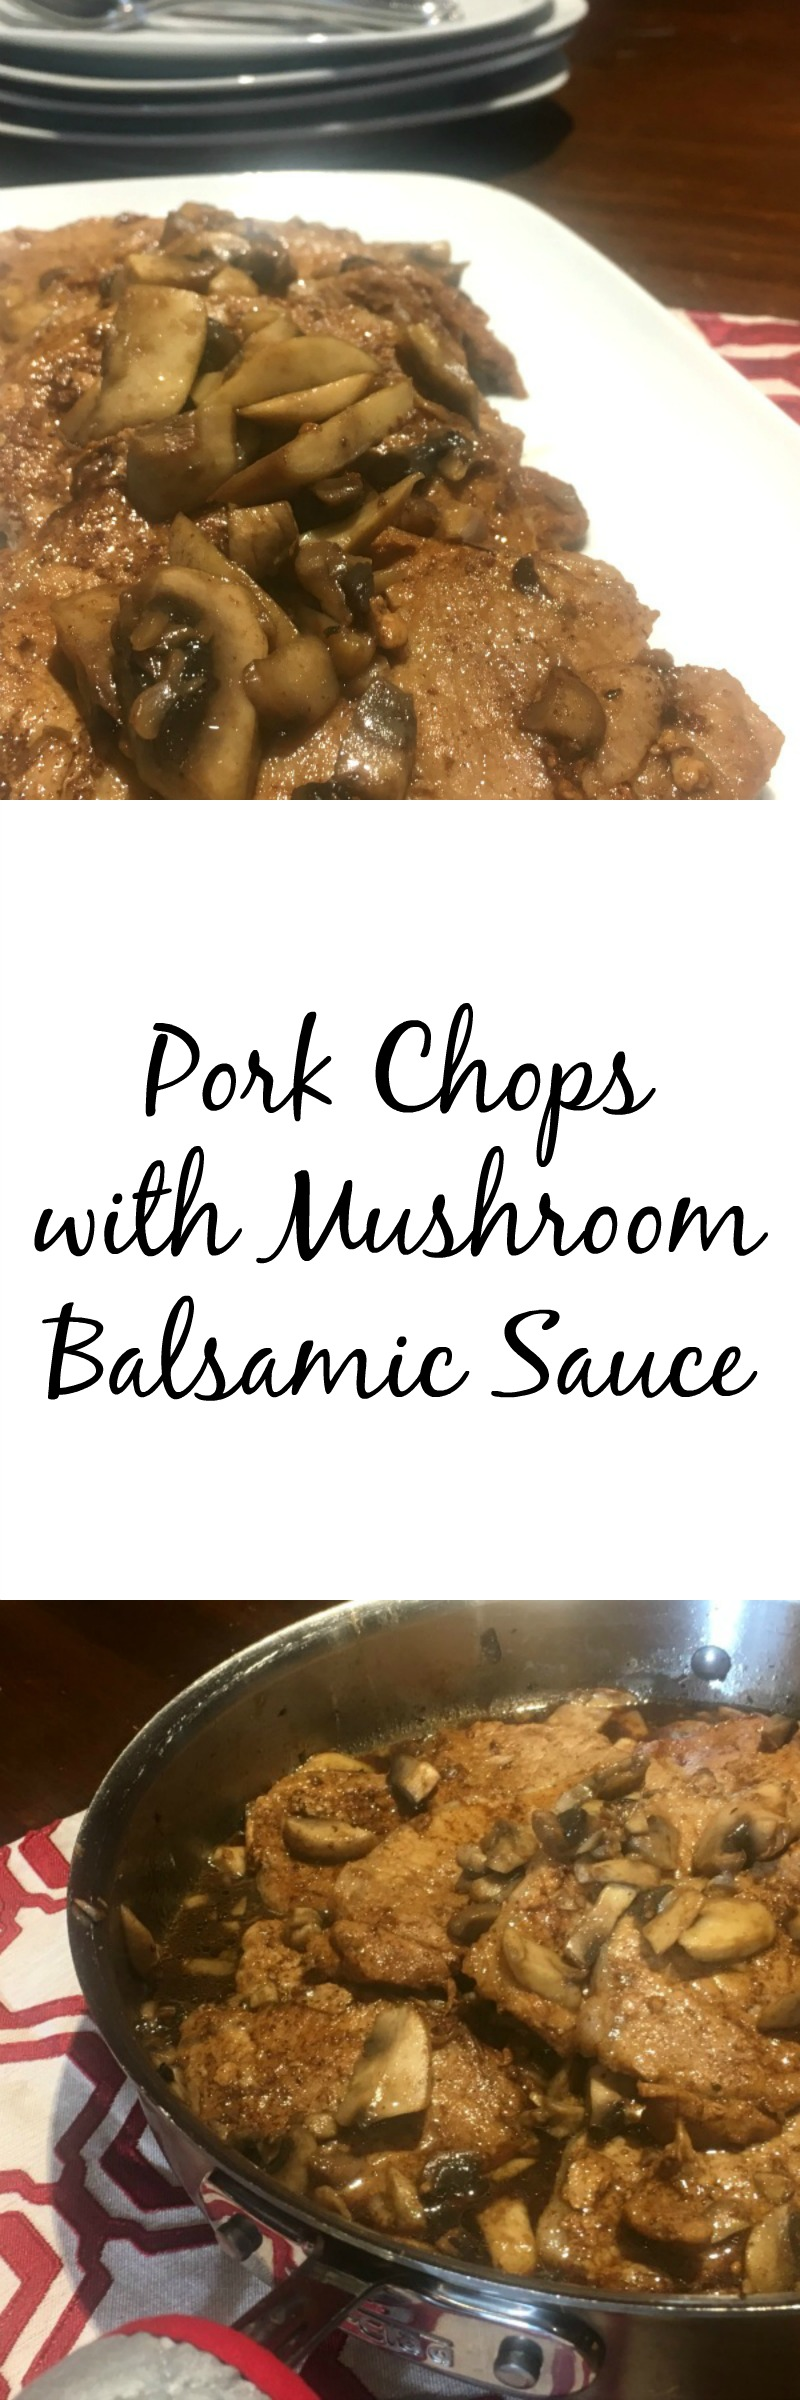 Pork Chops with Mushrooms in Balsamic Sauce--perfect for busy nights when you need dinner on the table in less than 30 minutes. Full of flavor, this recipe is sure to please your entire family!